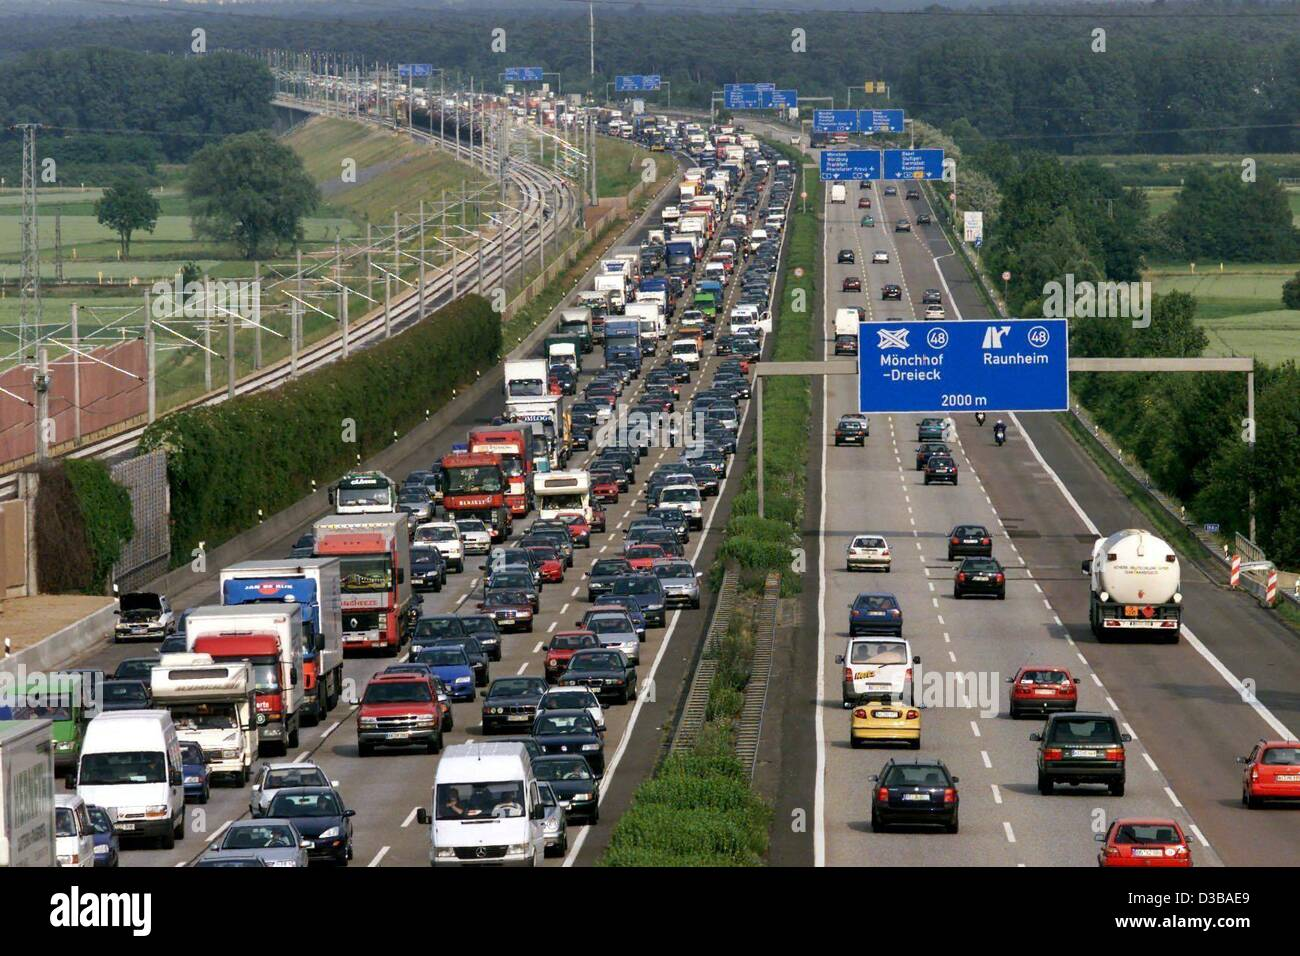 dpa files) - A 20 km long traffic jam was caused by an accident on